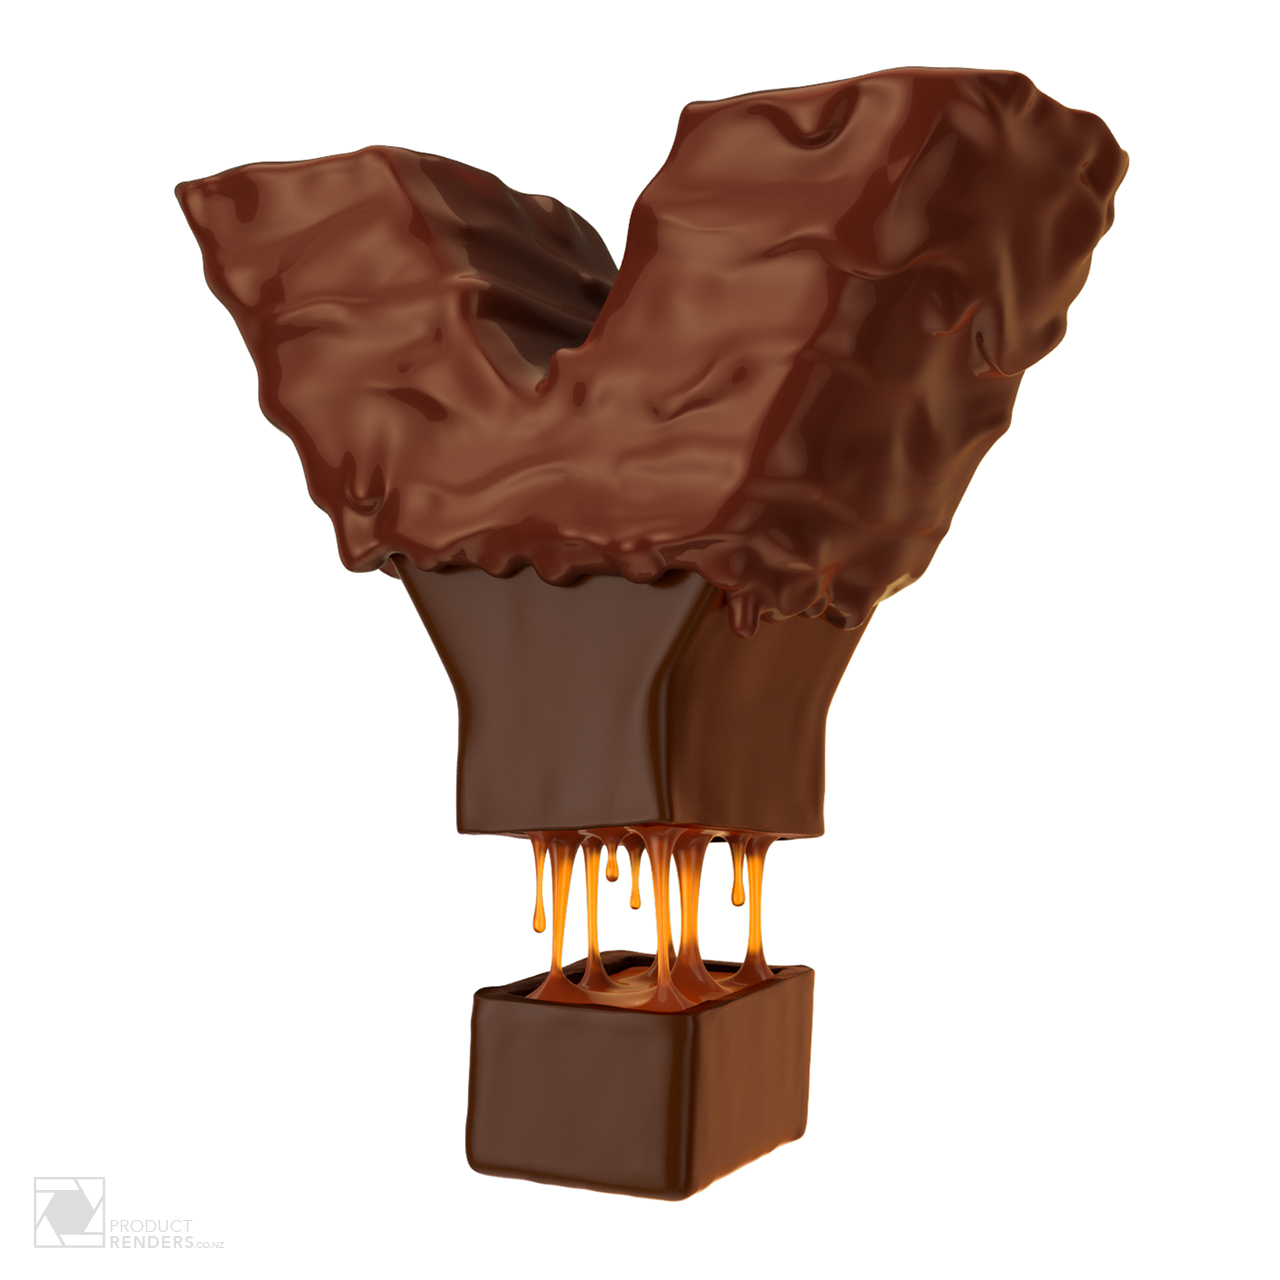 3D type render of a chocolate Y covered in runny chocolate sauce with a caramel centre. This render is part of a YUMMY 3D text render.